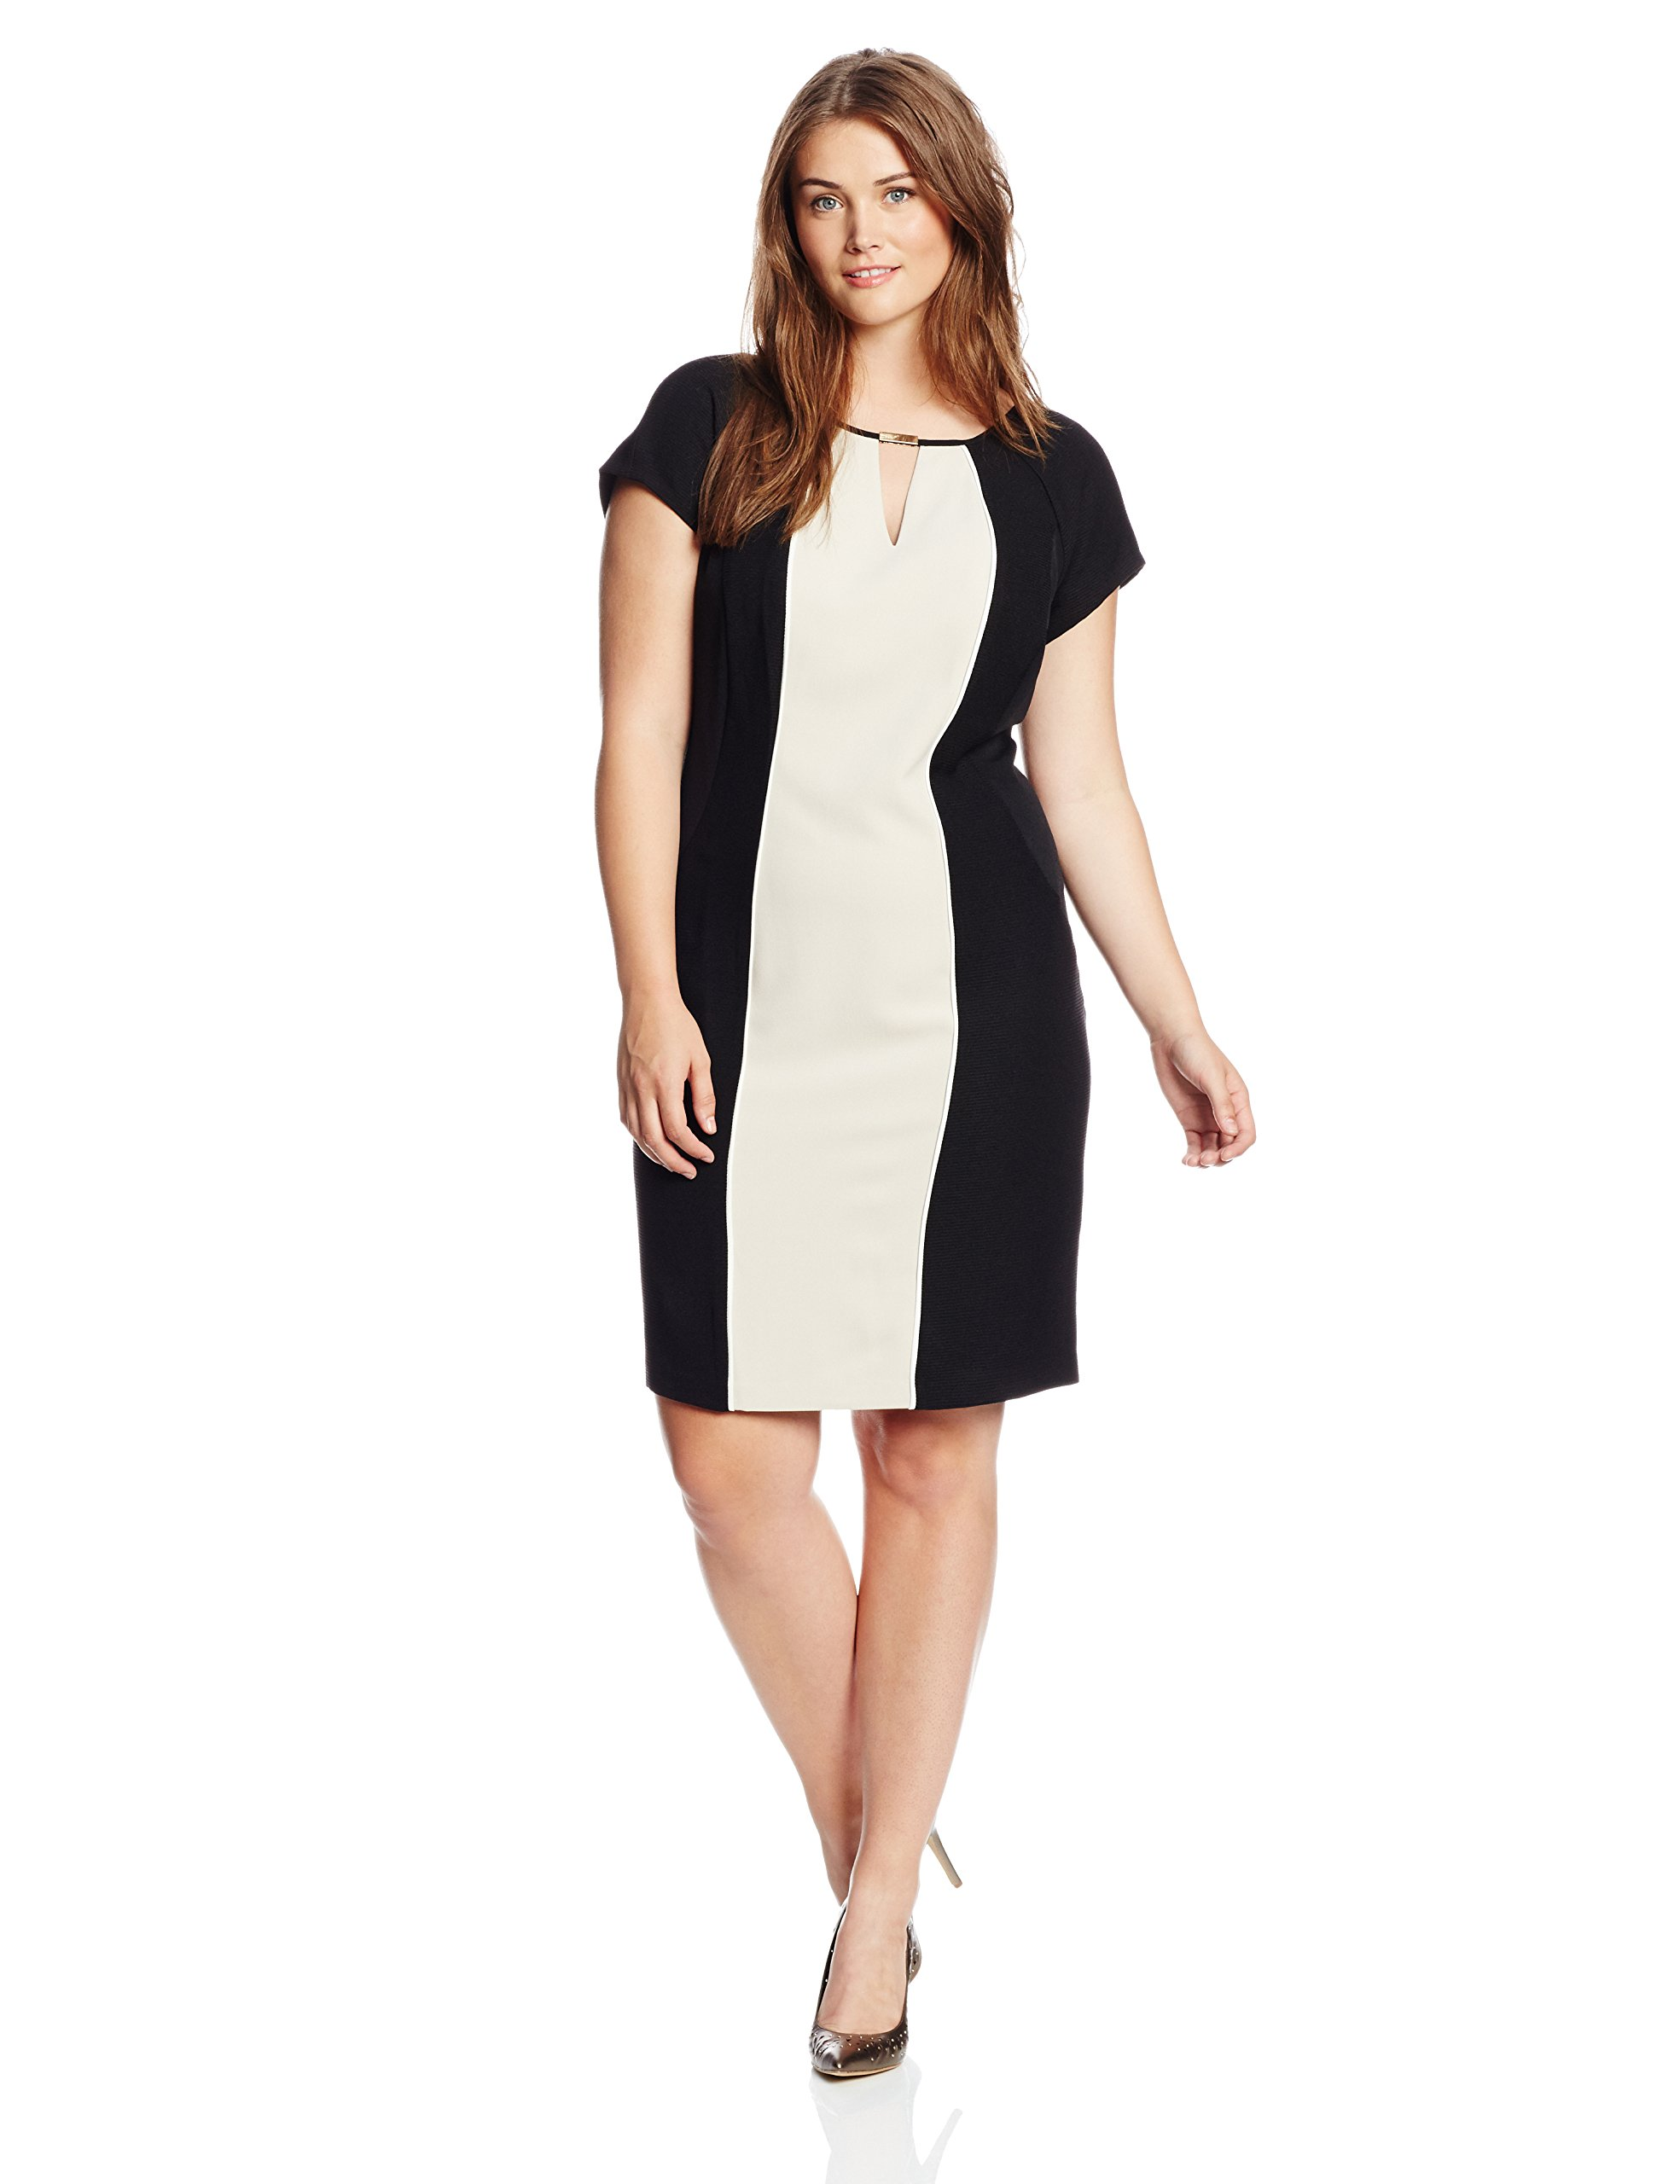 Plus Size Dresses That Flatter and Slim - Baby to Boomer